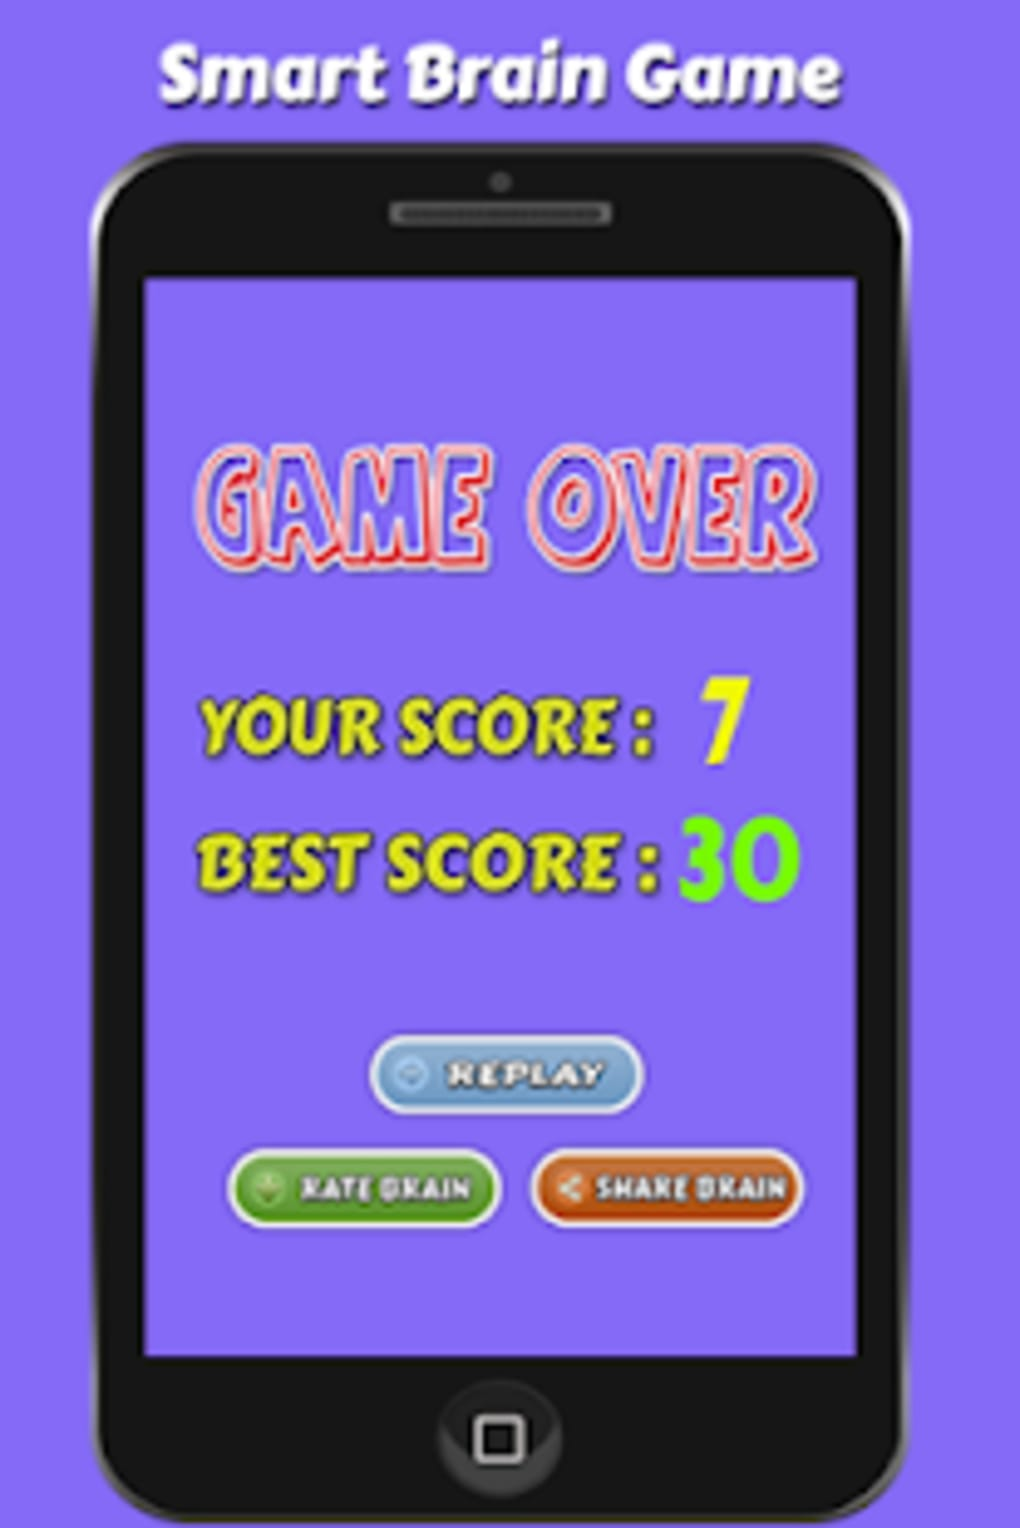 Smart Brain Game for Android - Download